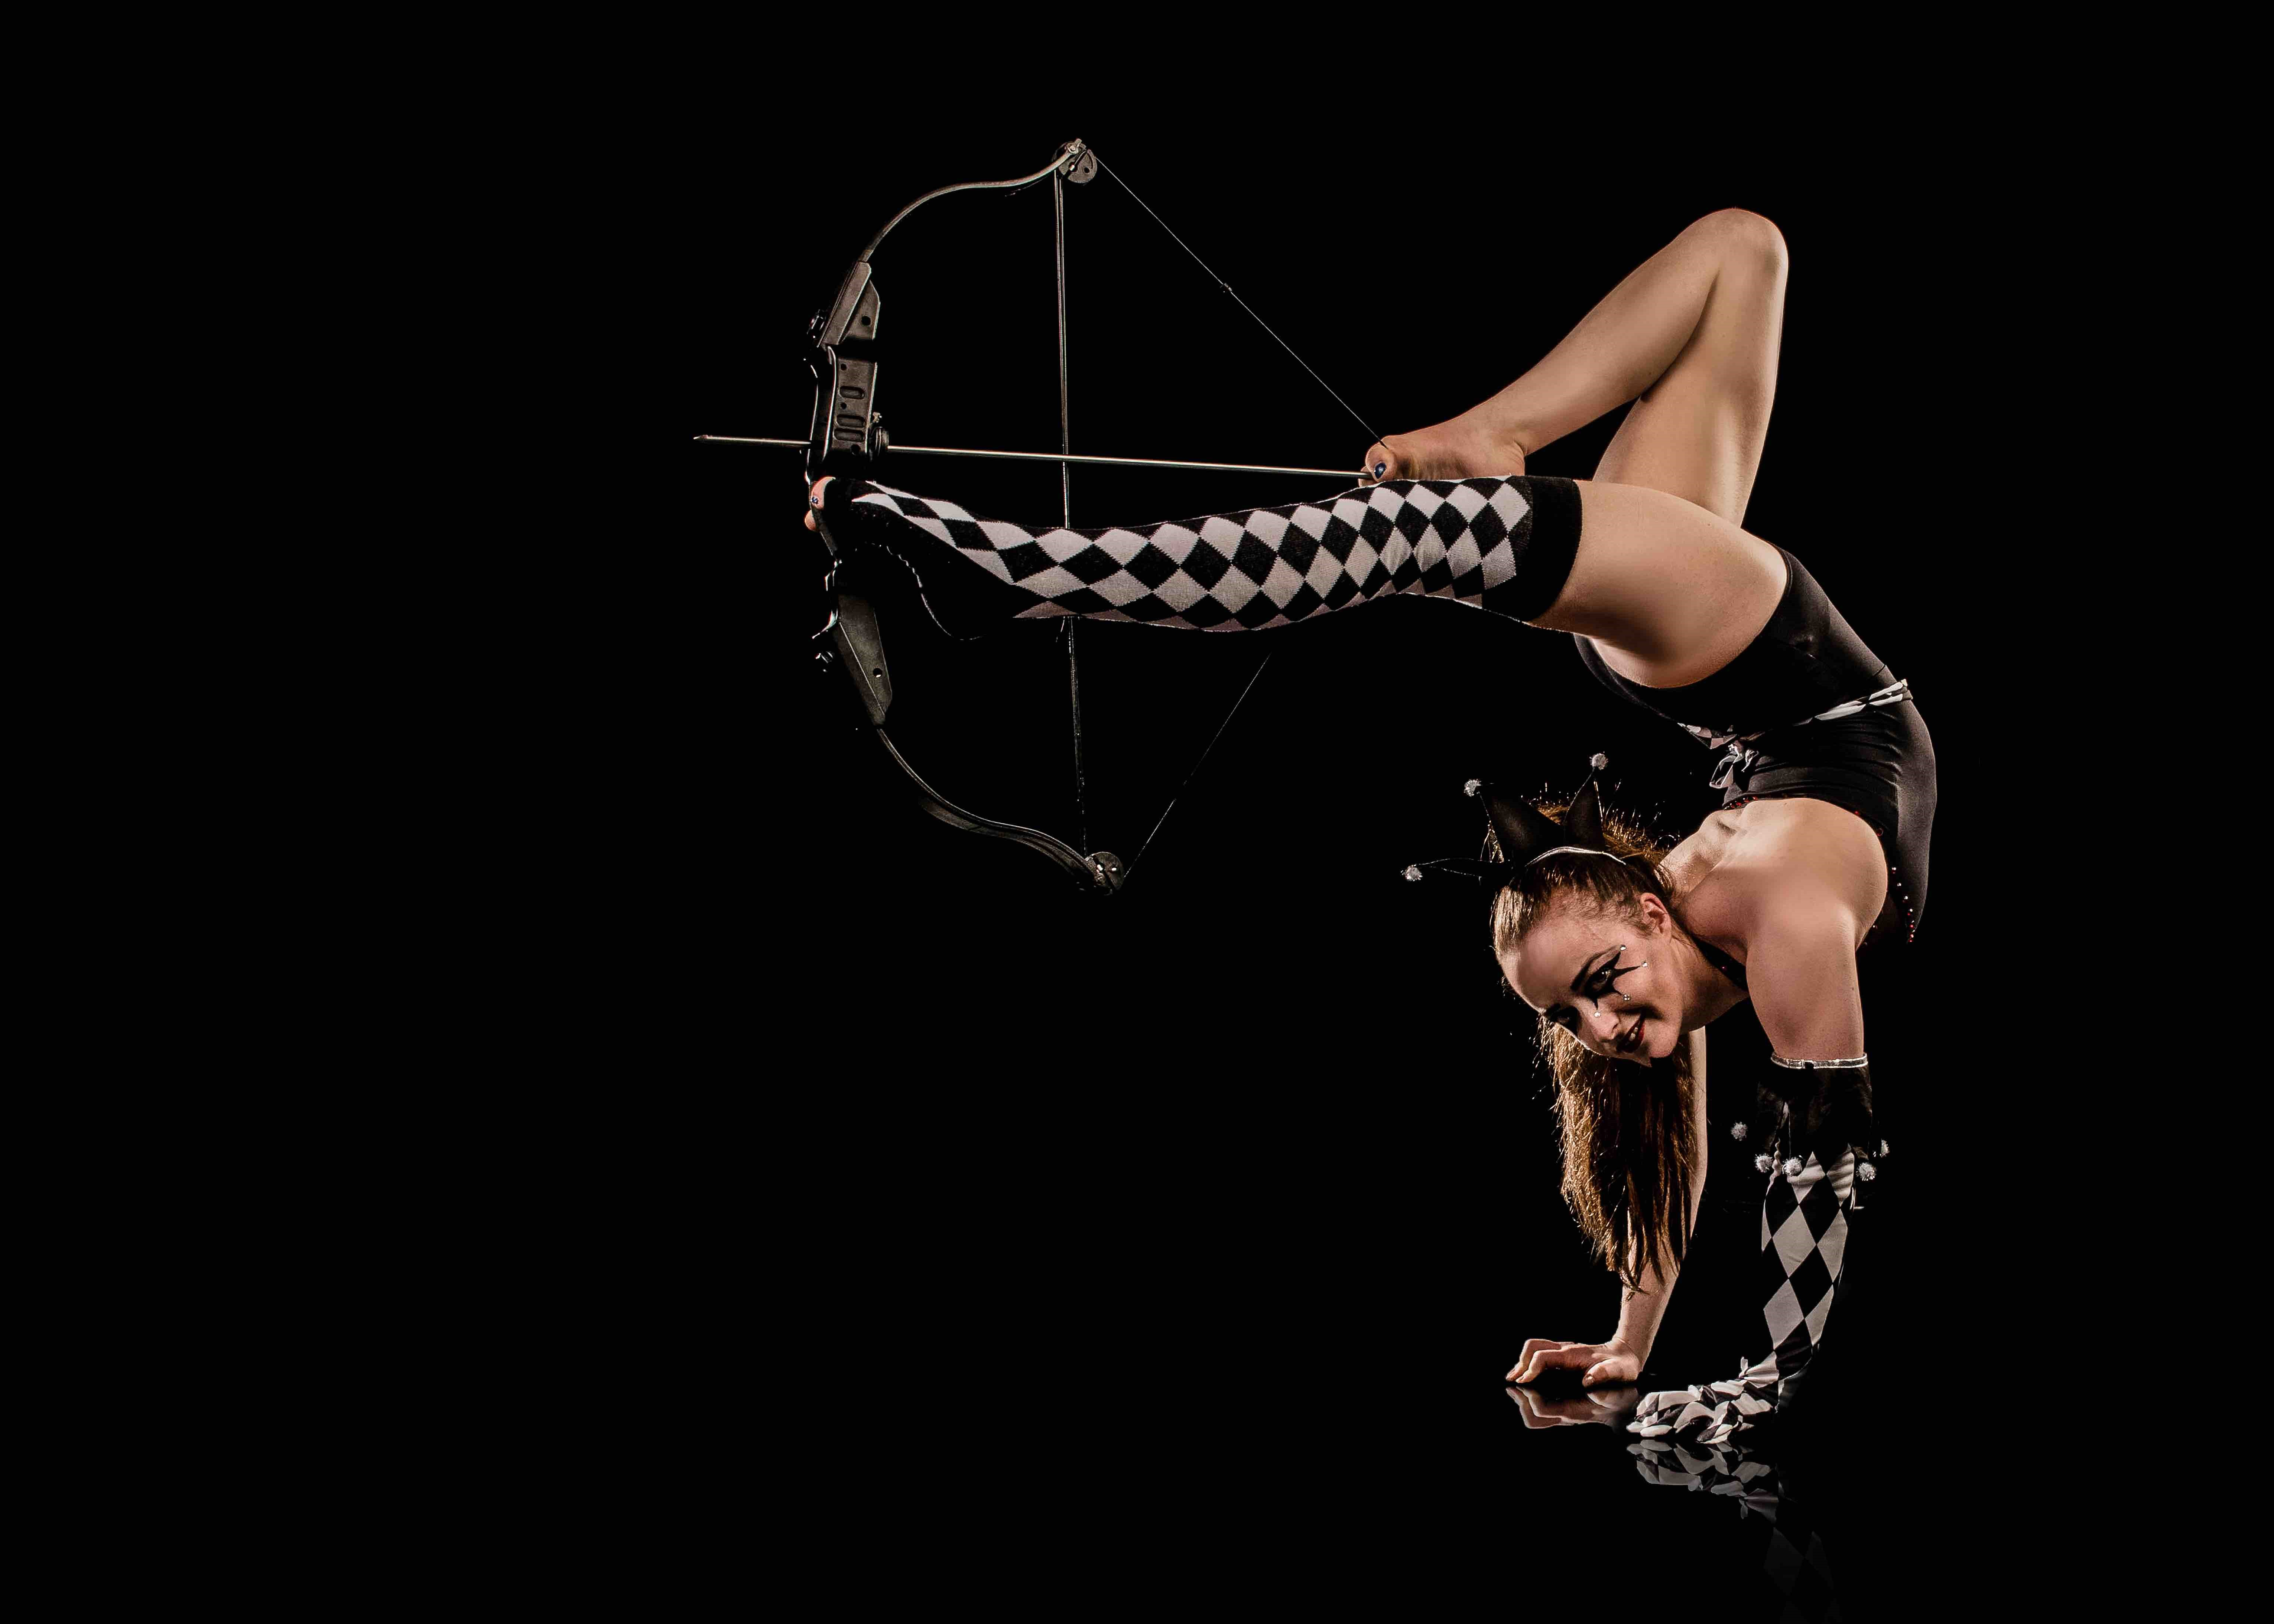 bow and arrow performer